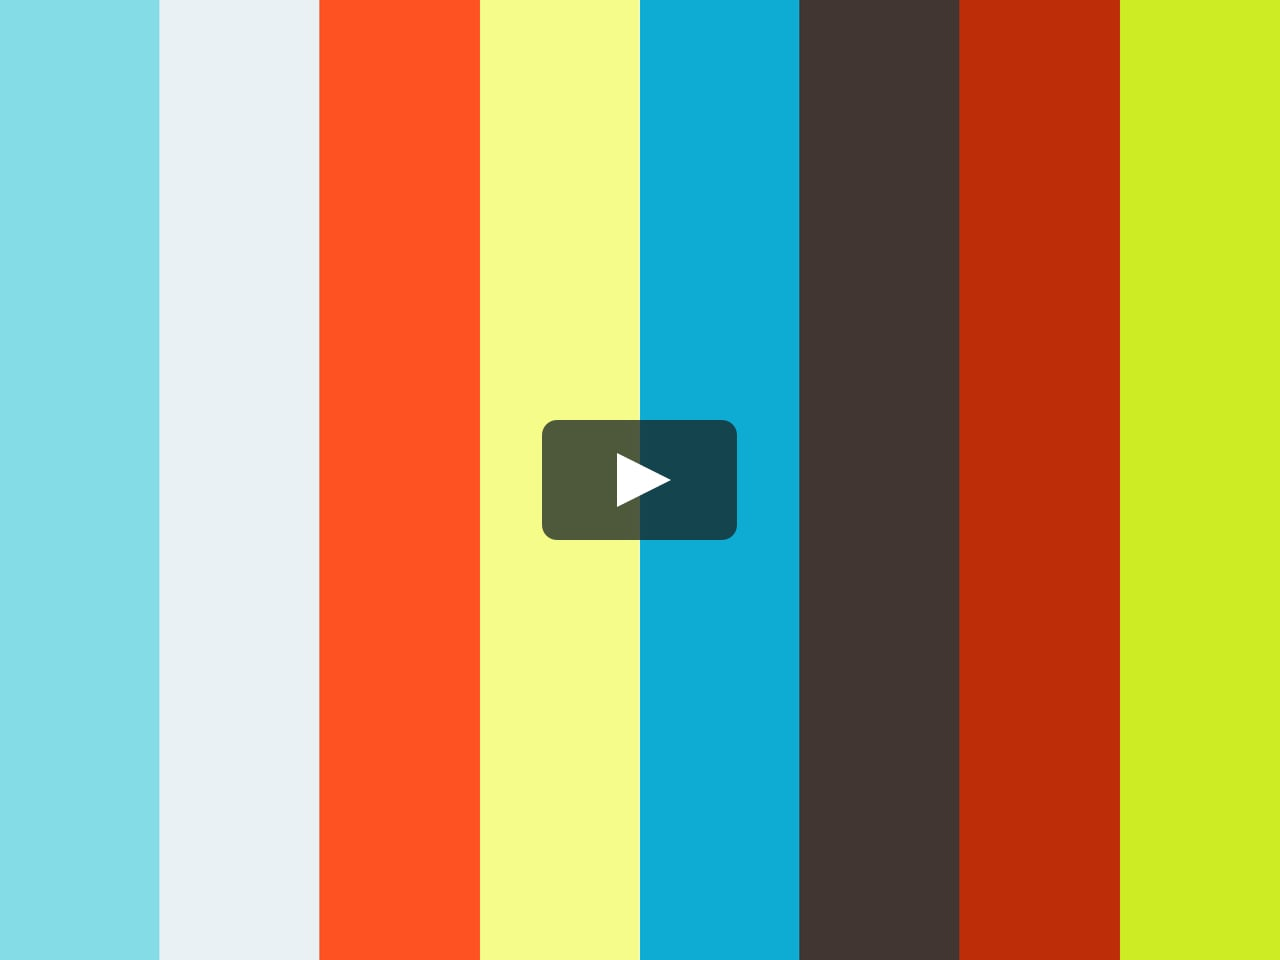 the alchemist by paulo coelho and the prophet by kahlil gibran  the alchemist by paulo coelho and the prophet by kahlil gibran book review on vimeo